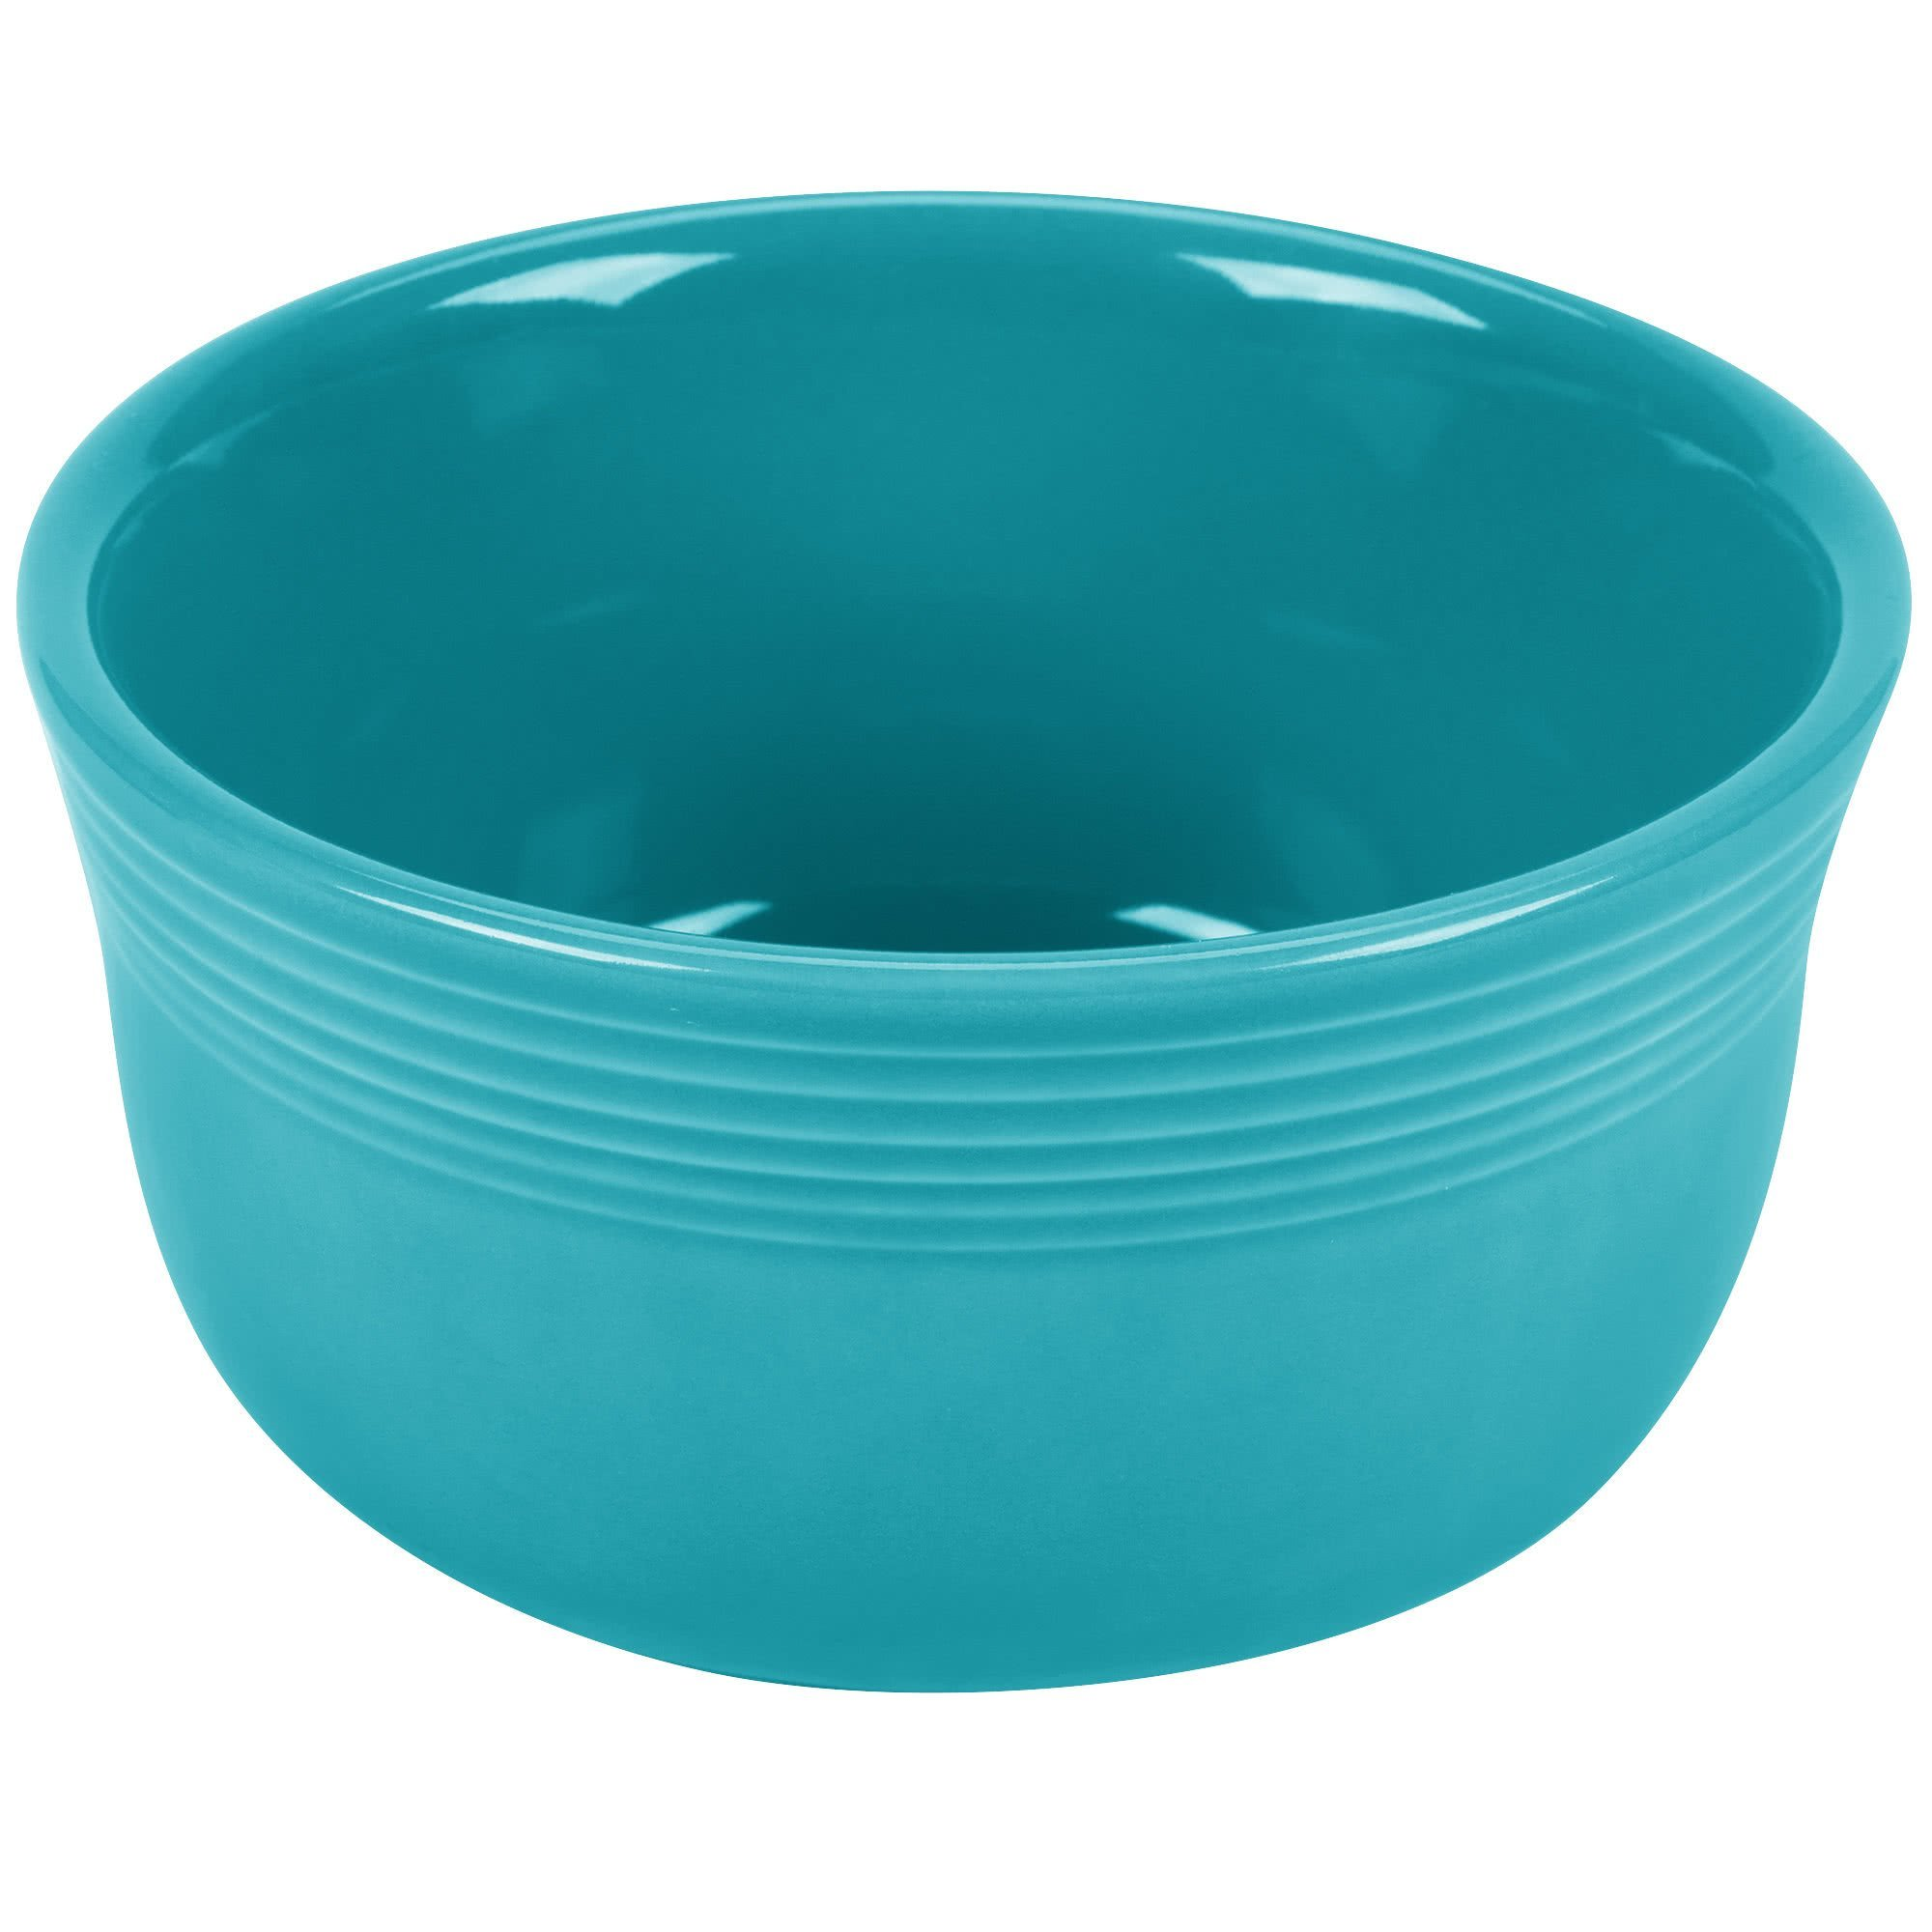 Fiesta 28-Ounce Gusto Bowl, Turquoise